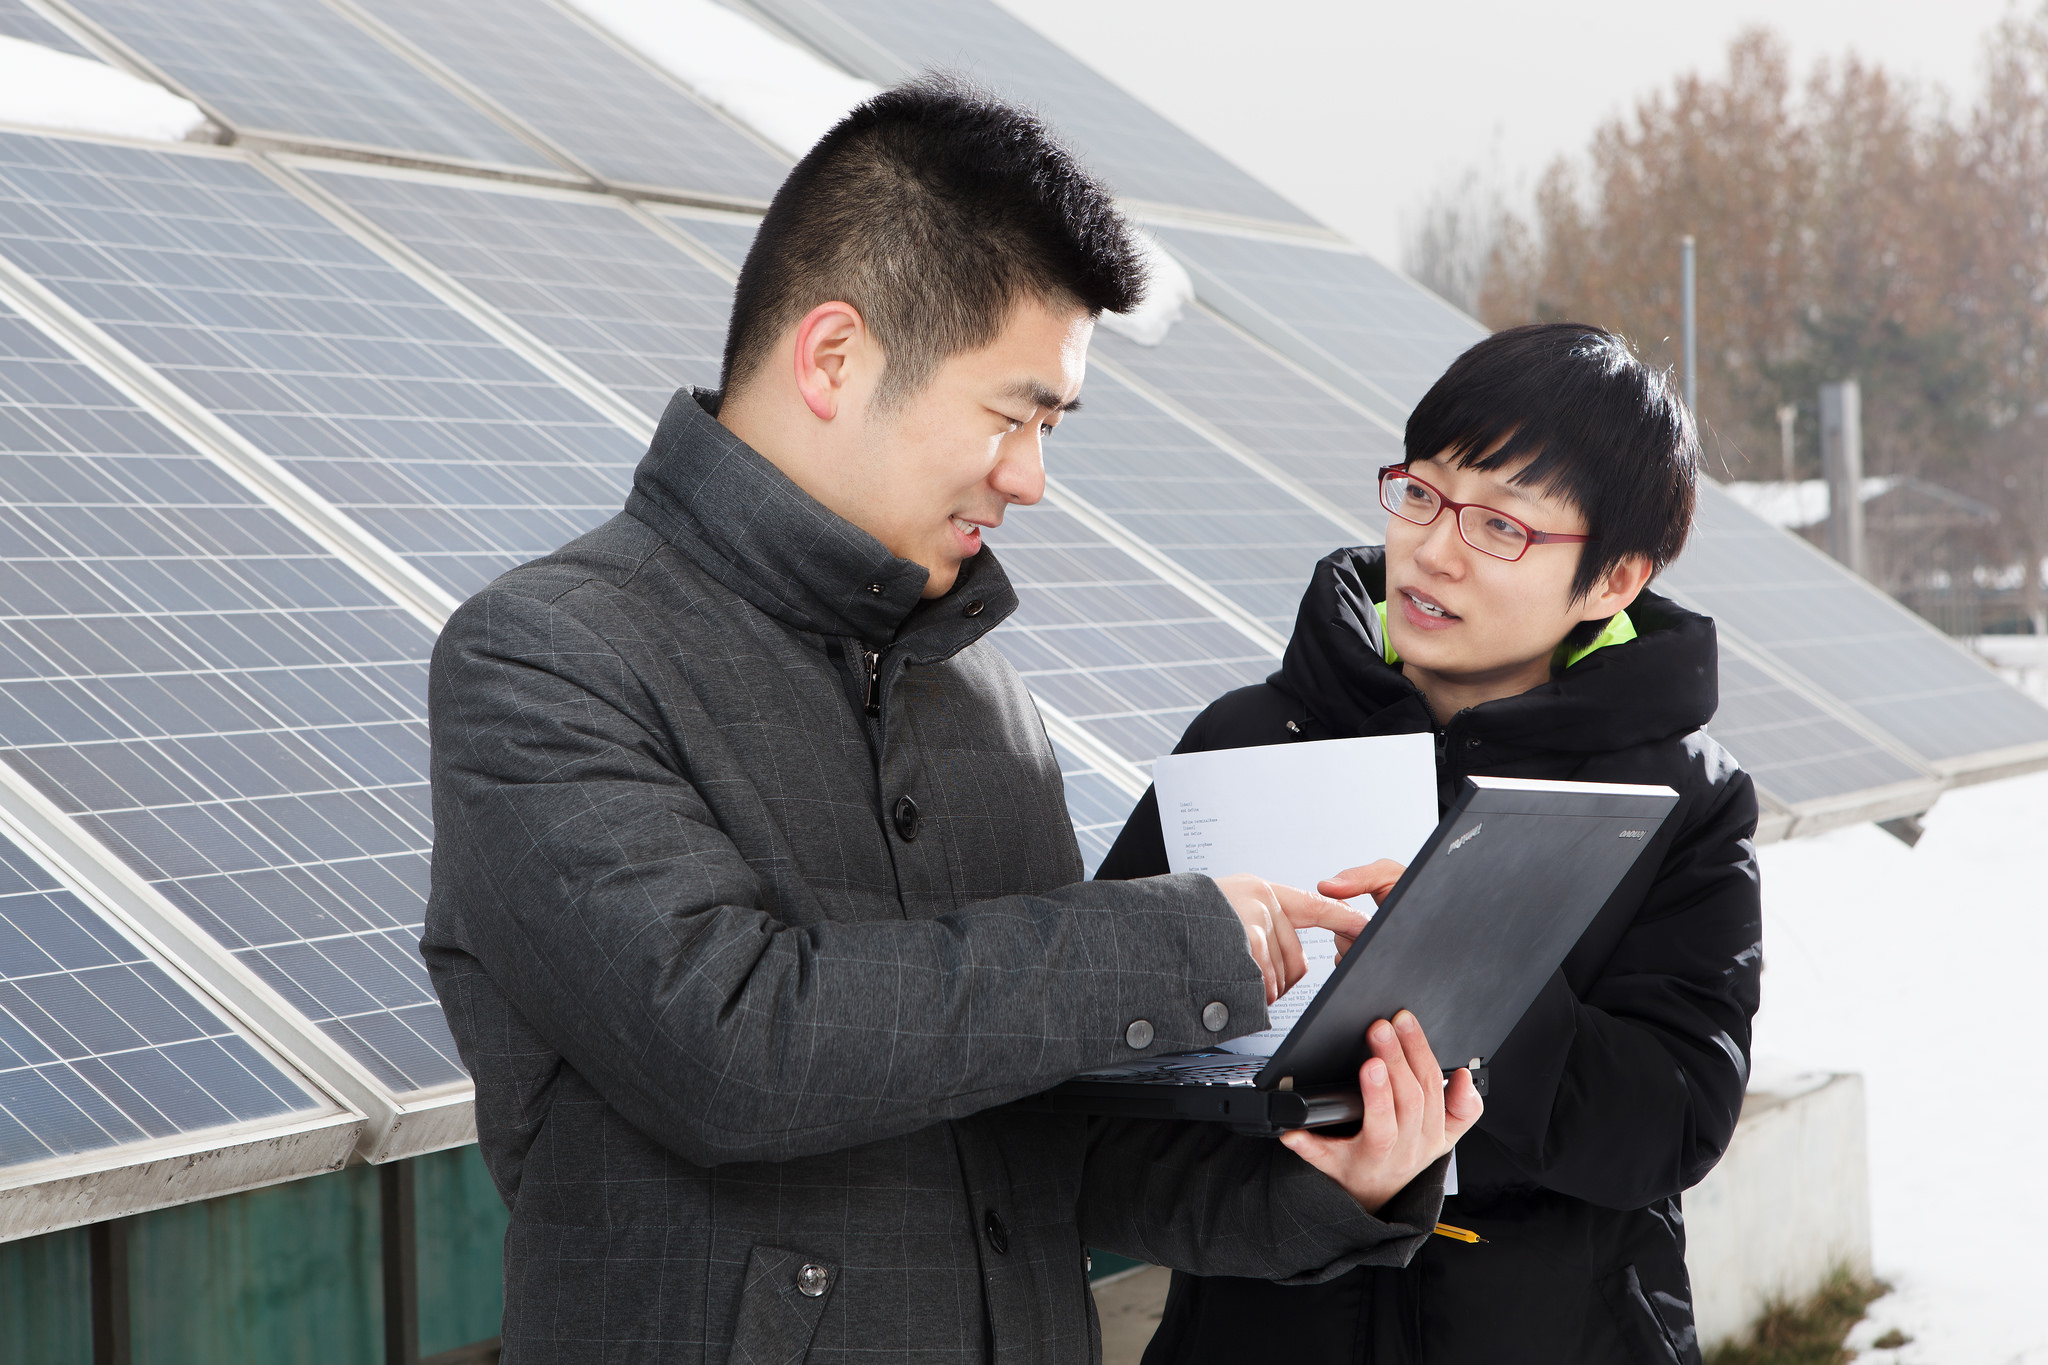 <p>Solar research conducted by IBM with China. Flickr/IBM Research</p>